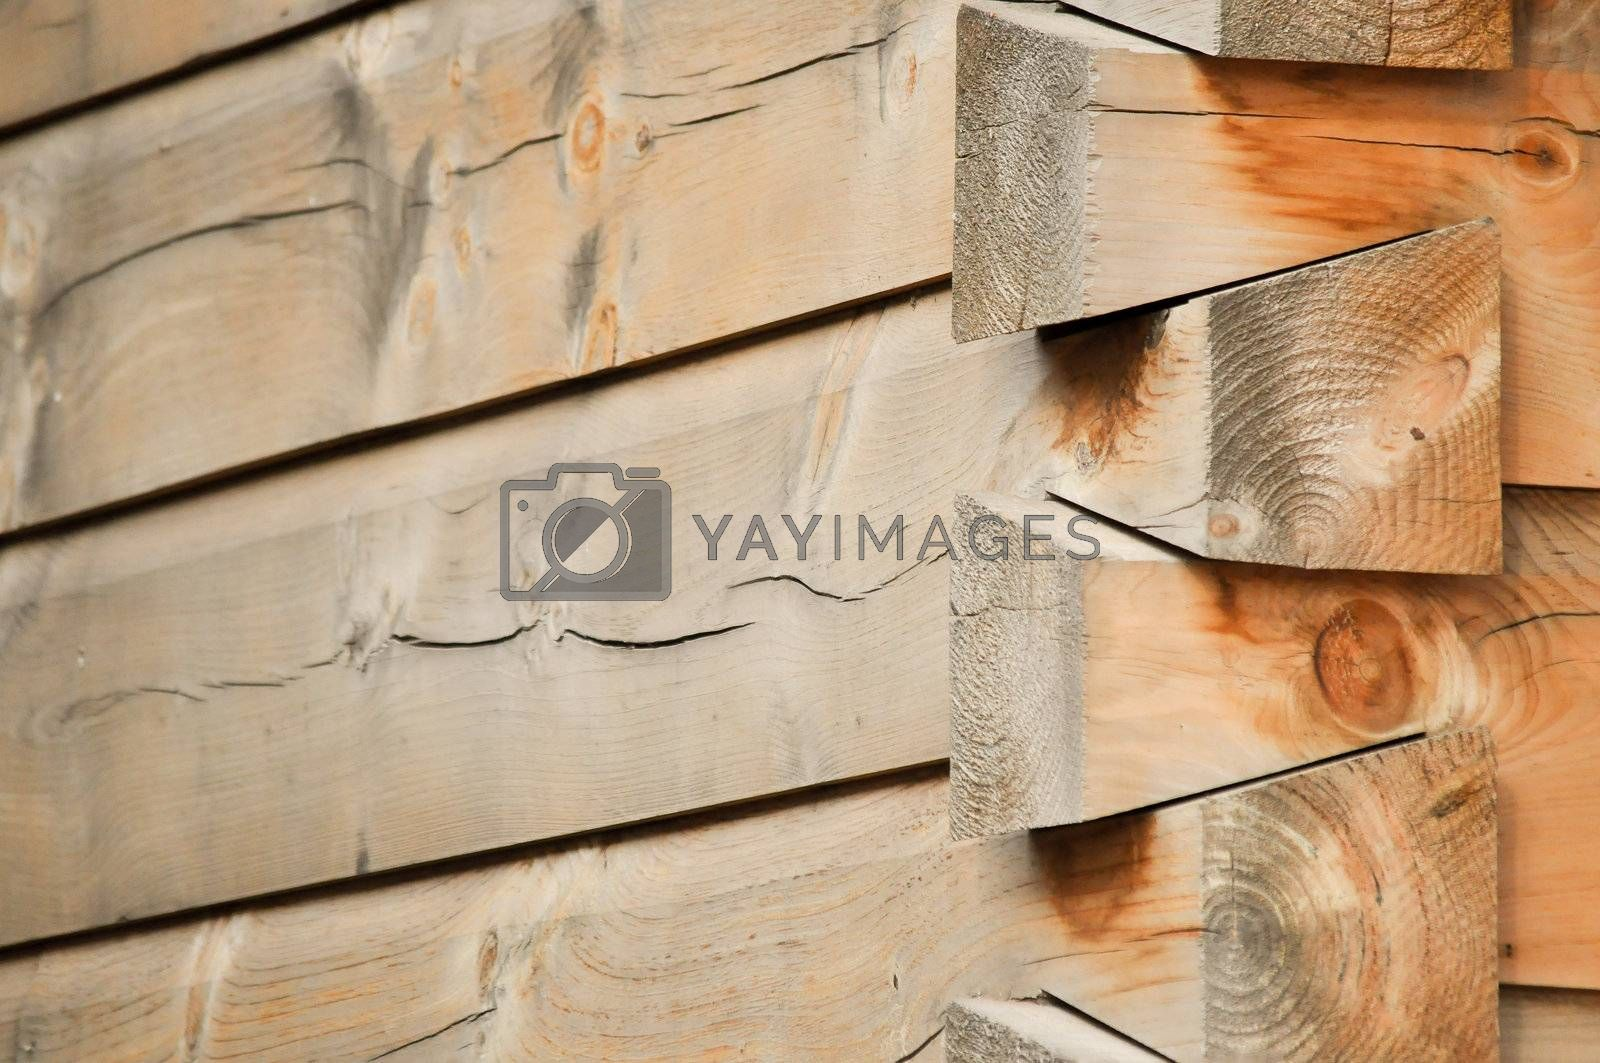 Royalty free image of Cabin Corner on Right by RefocusPhoto